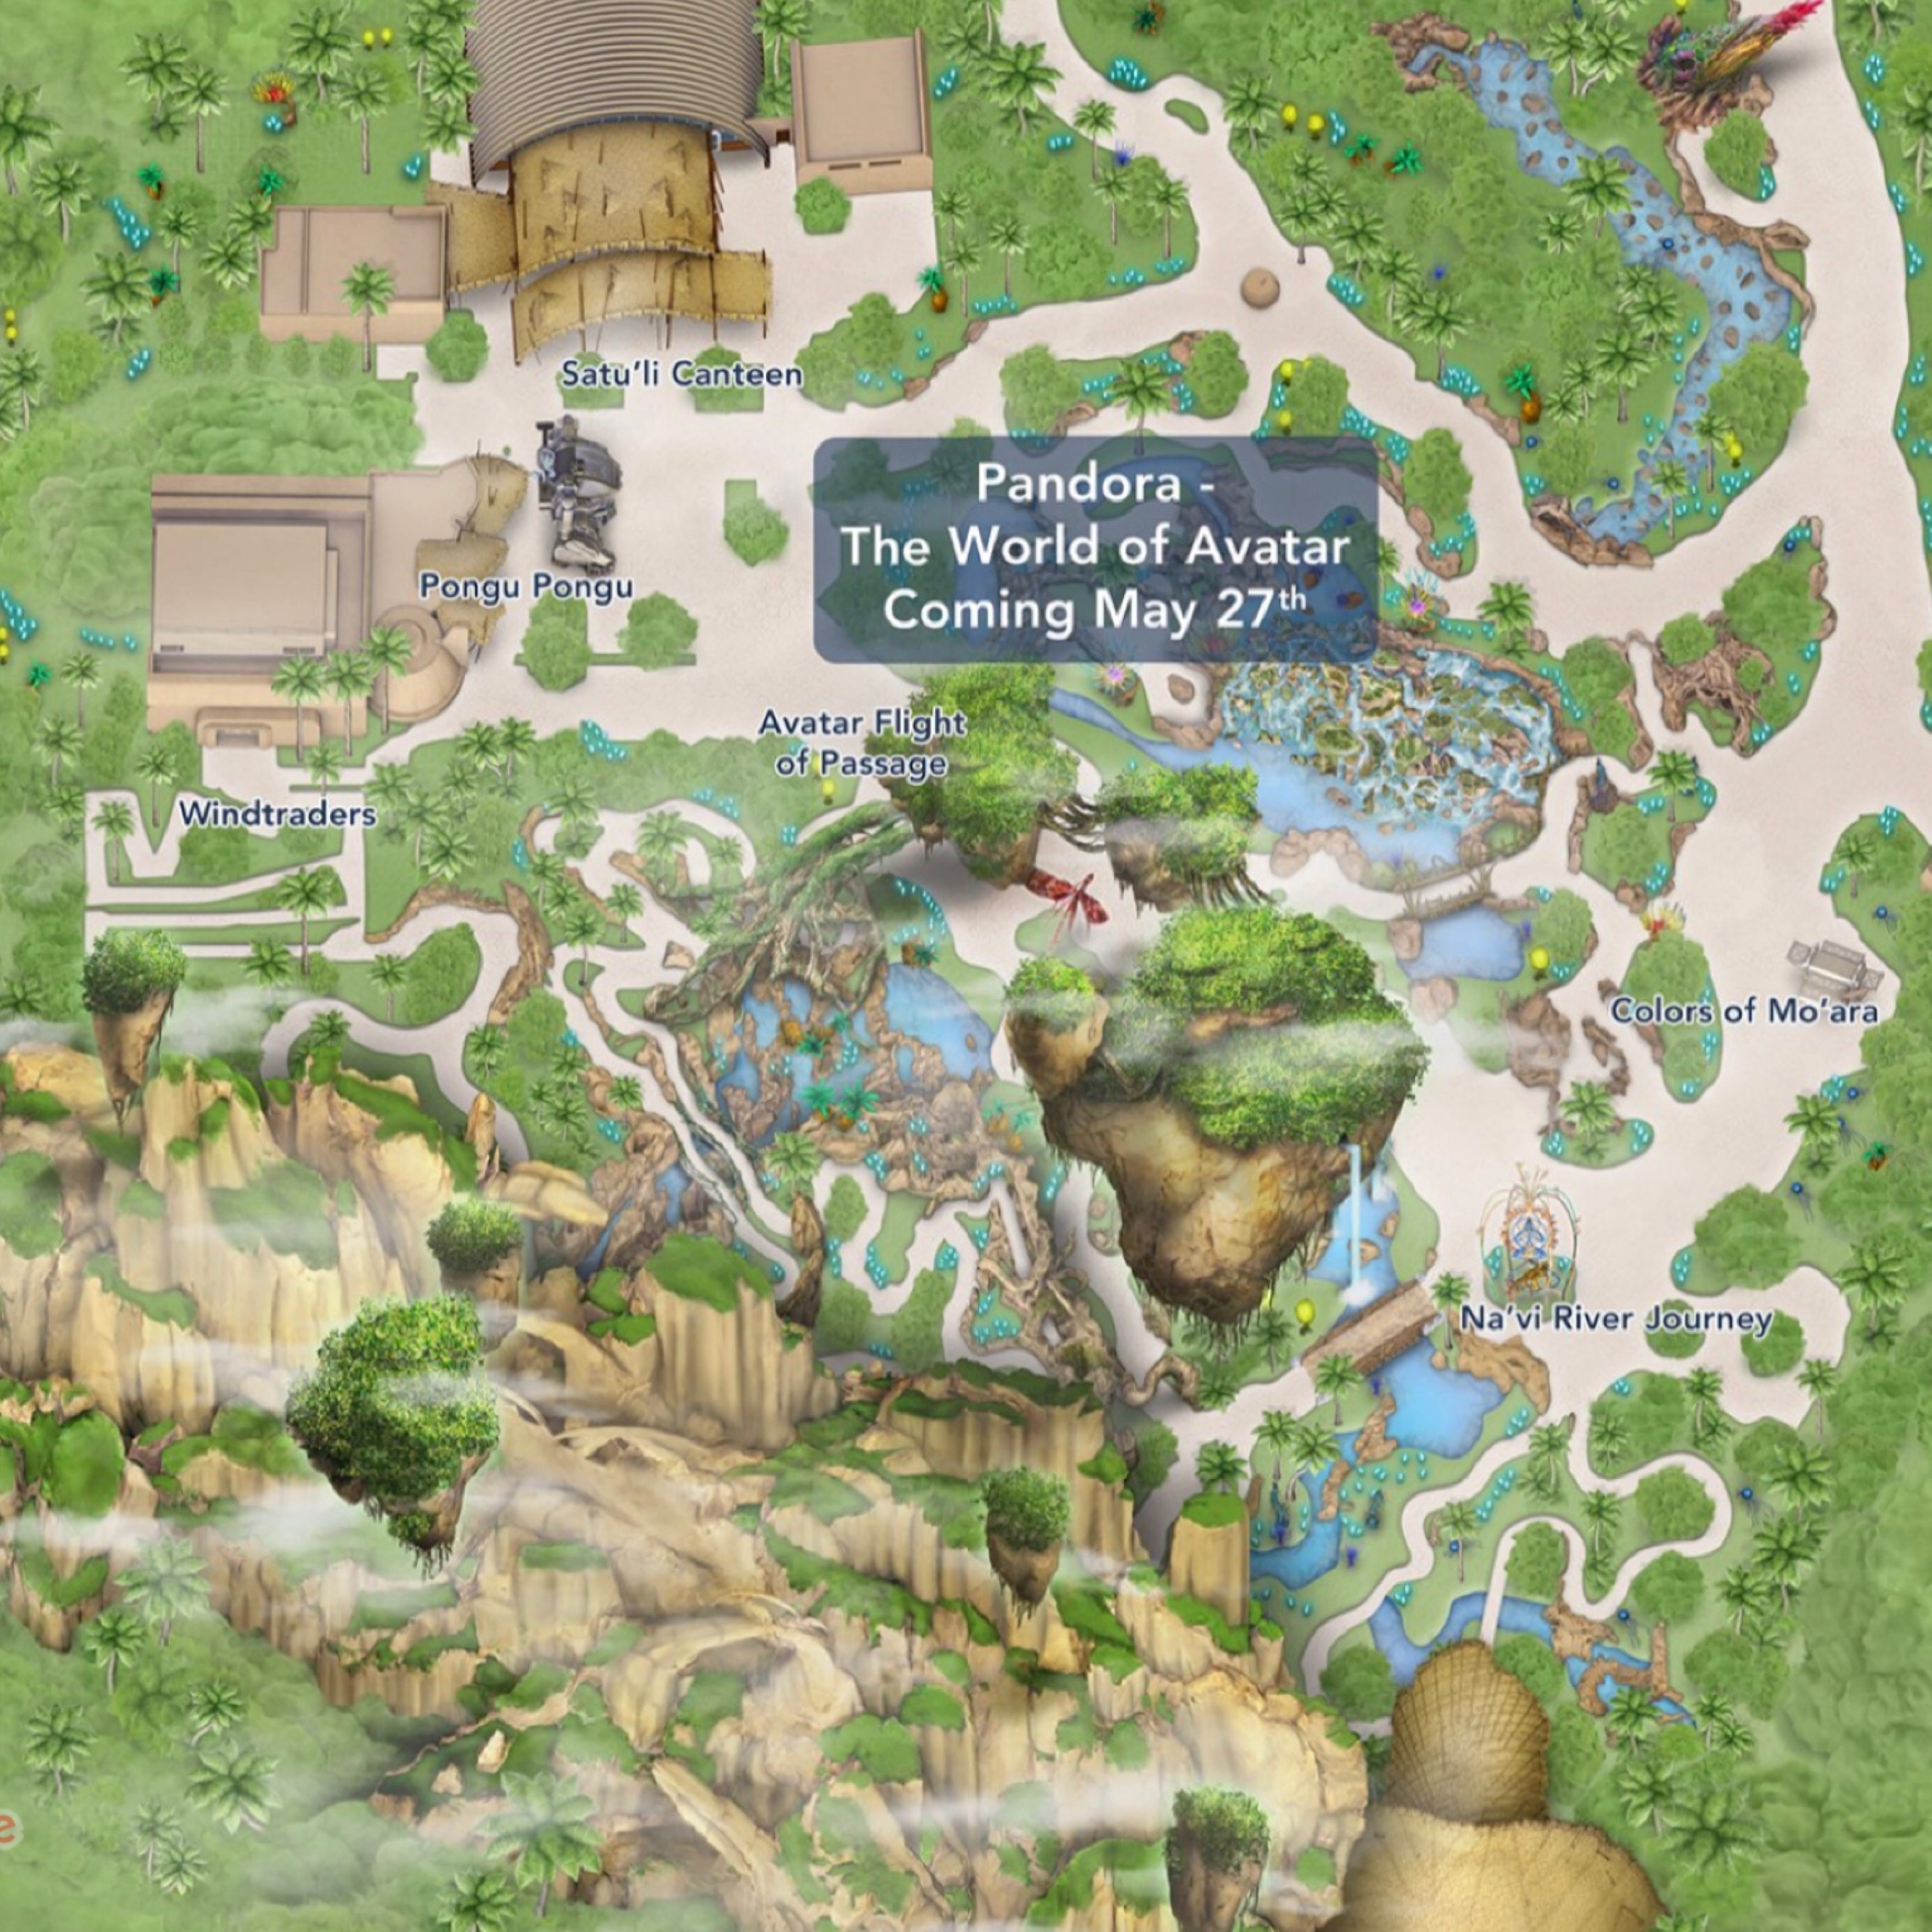 Update disney adds pandora the world of avatar to the my disney with this updated park map we can now see the two walkways into pandora the first walkway is near tiffins restaurant and nomad lounge gumiabroncs Image collections